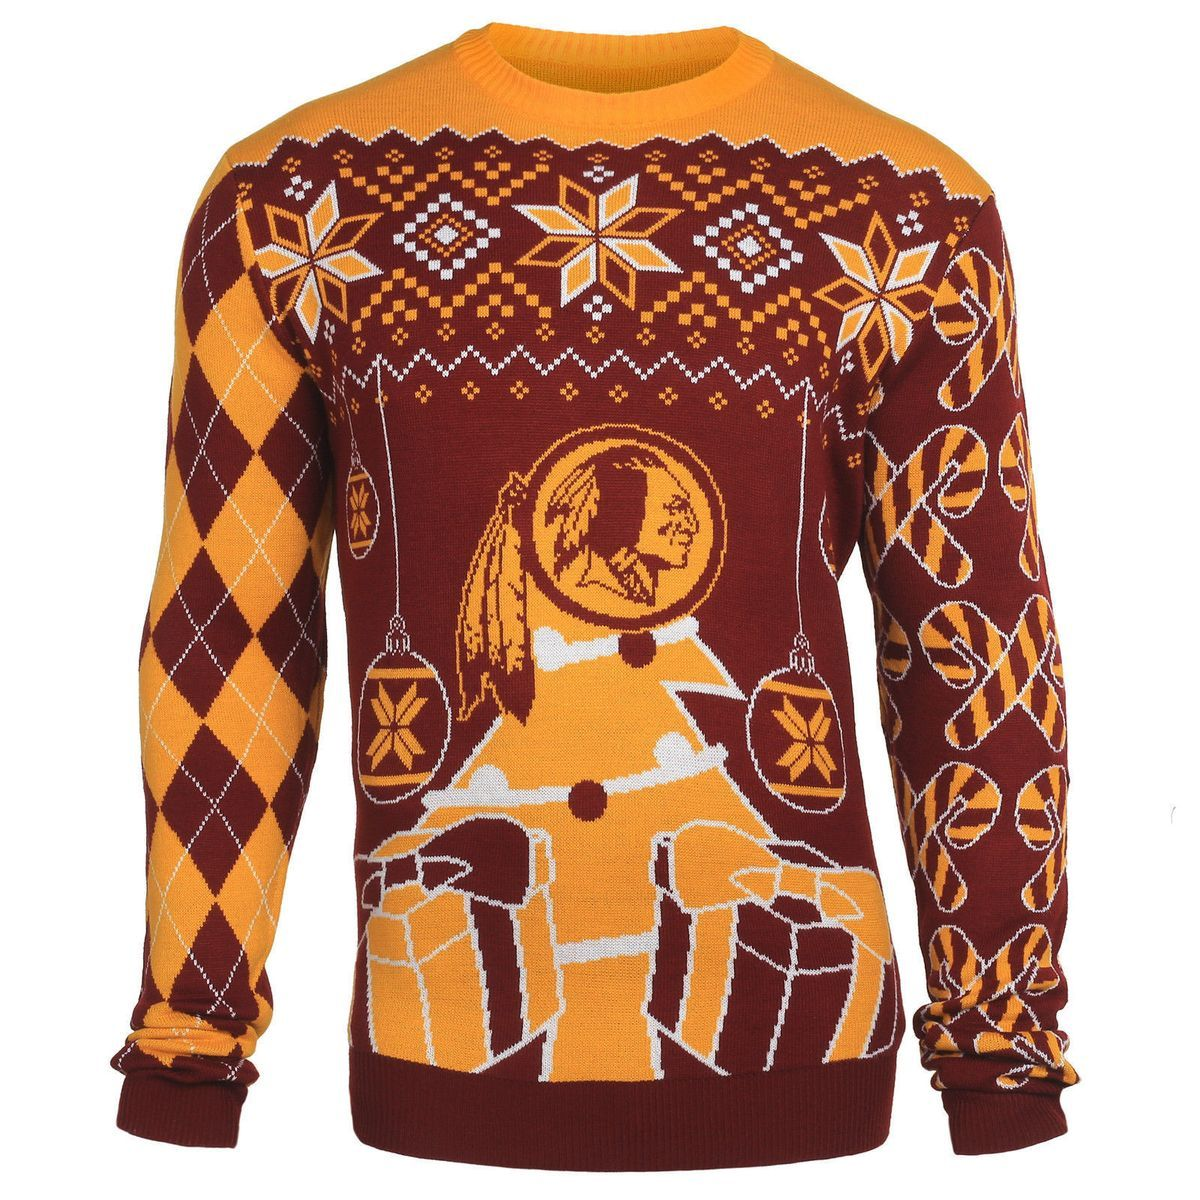 brand new a1319 37048 A not so ugly #Redskins Christmas sweater. | Redskins ...